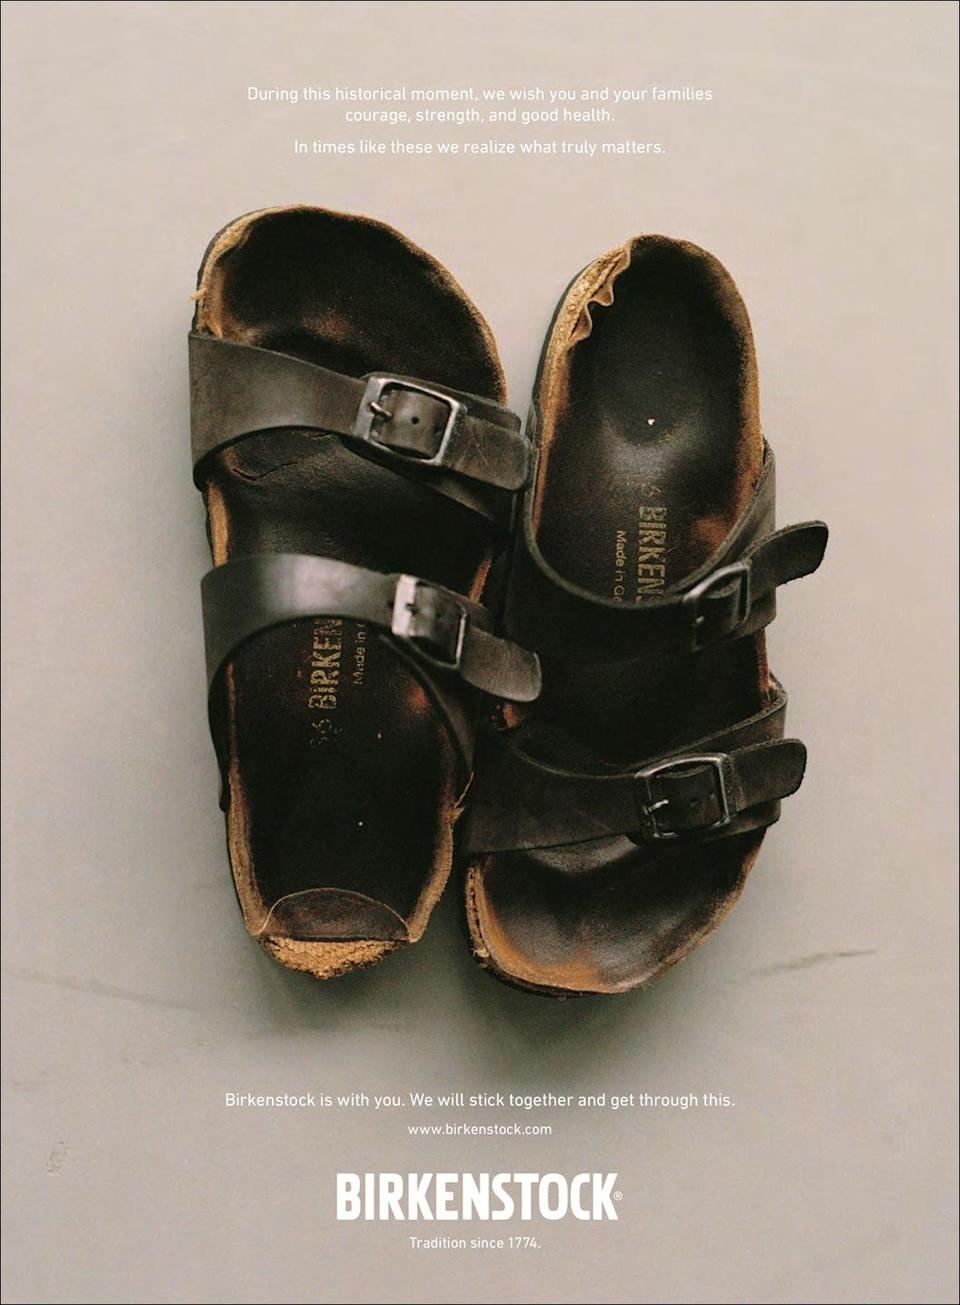 <p>During this historical moment, we wish you and your families courage, strength, and good health.</p><p>In times like these we realize what truly matters.</p><p>Birkenstock is with you. We will stick together and get through this.</p>